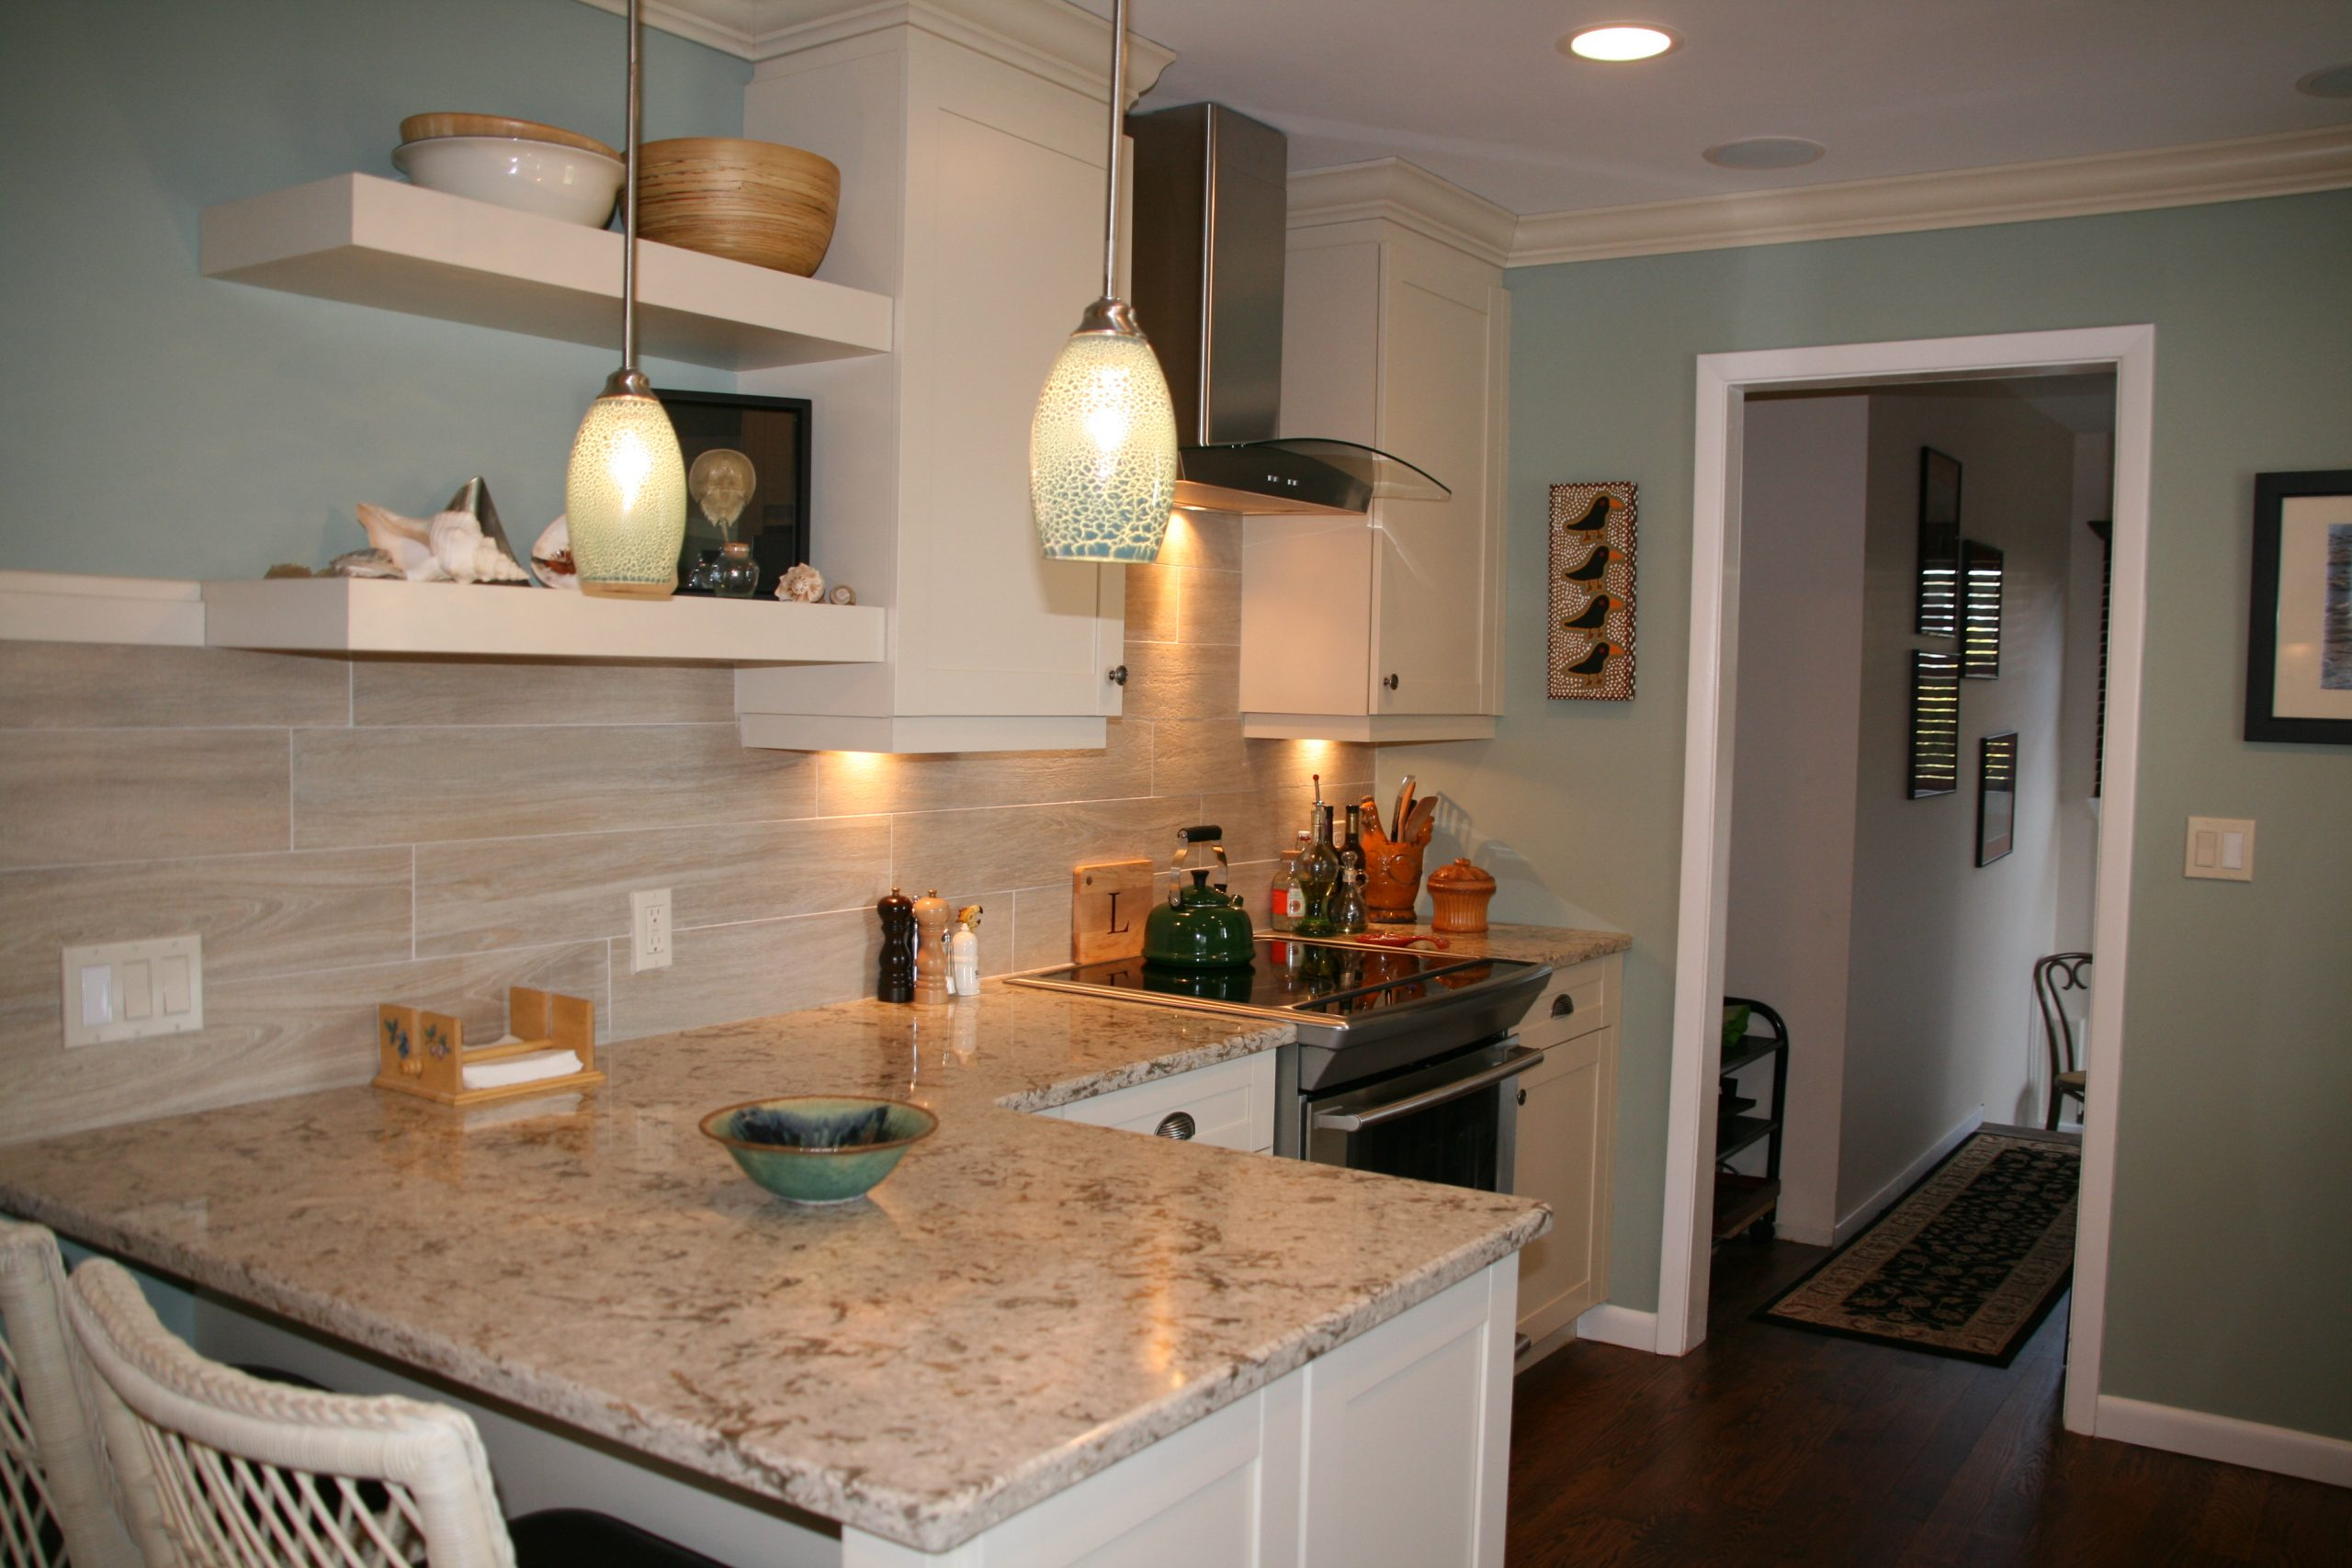 5 Trending Ways to Remodel Your Kitchen